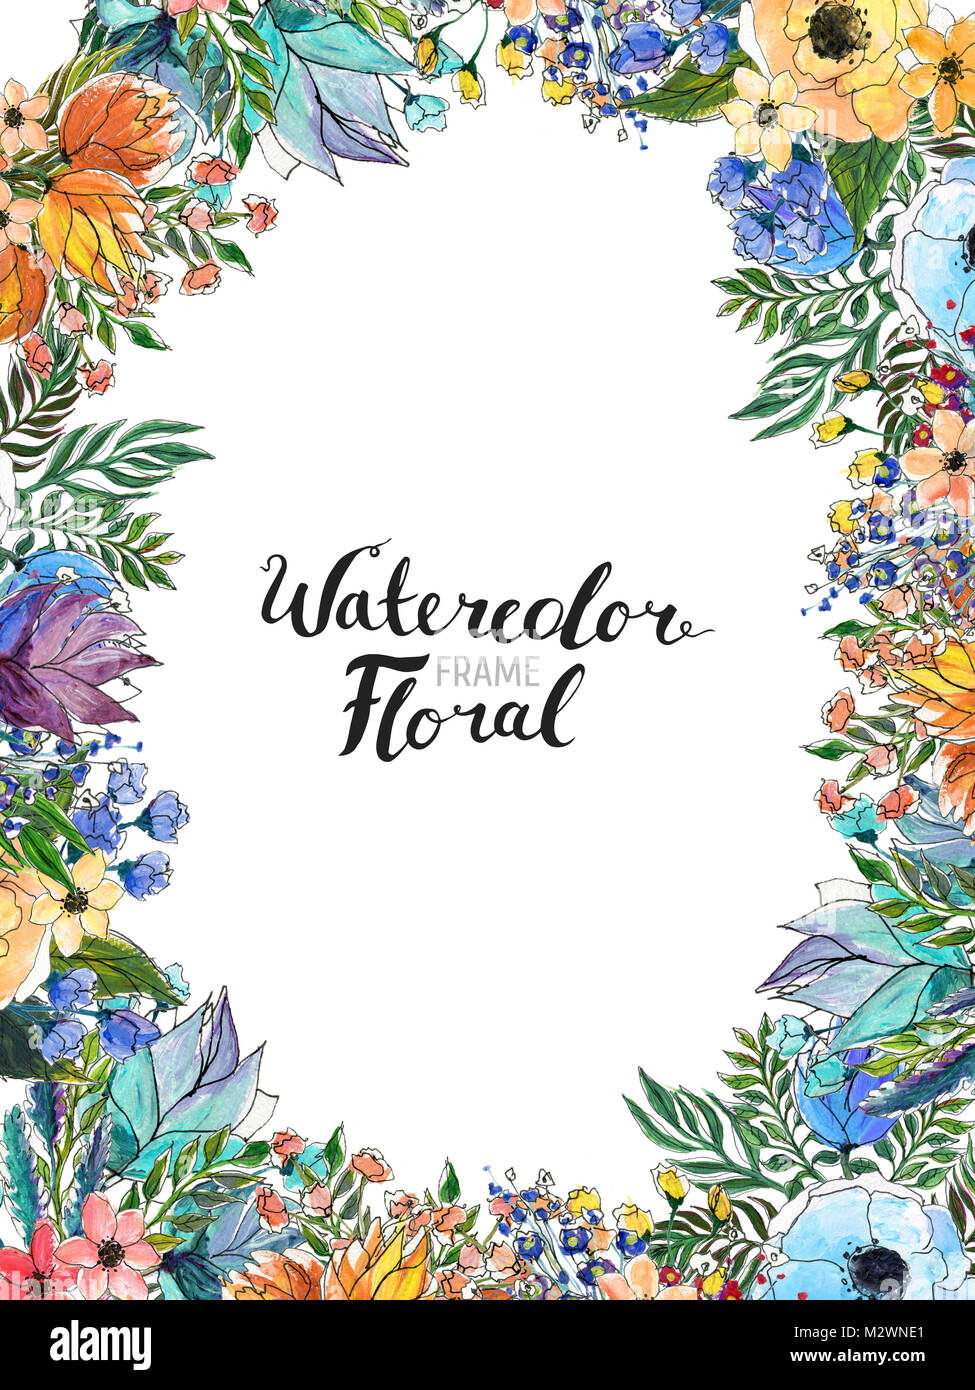 Watercolor Flower Border Stock Photo 173898649